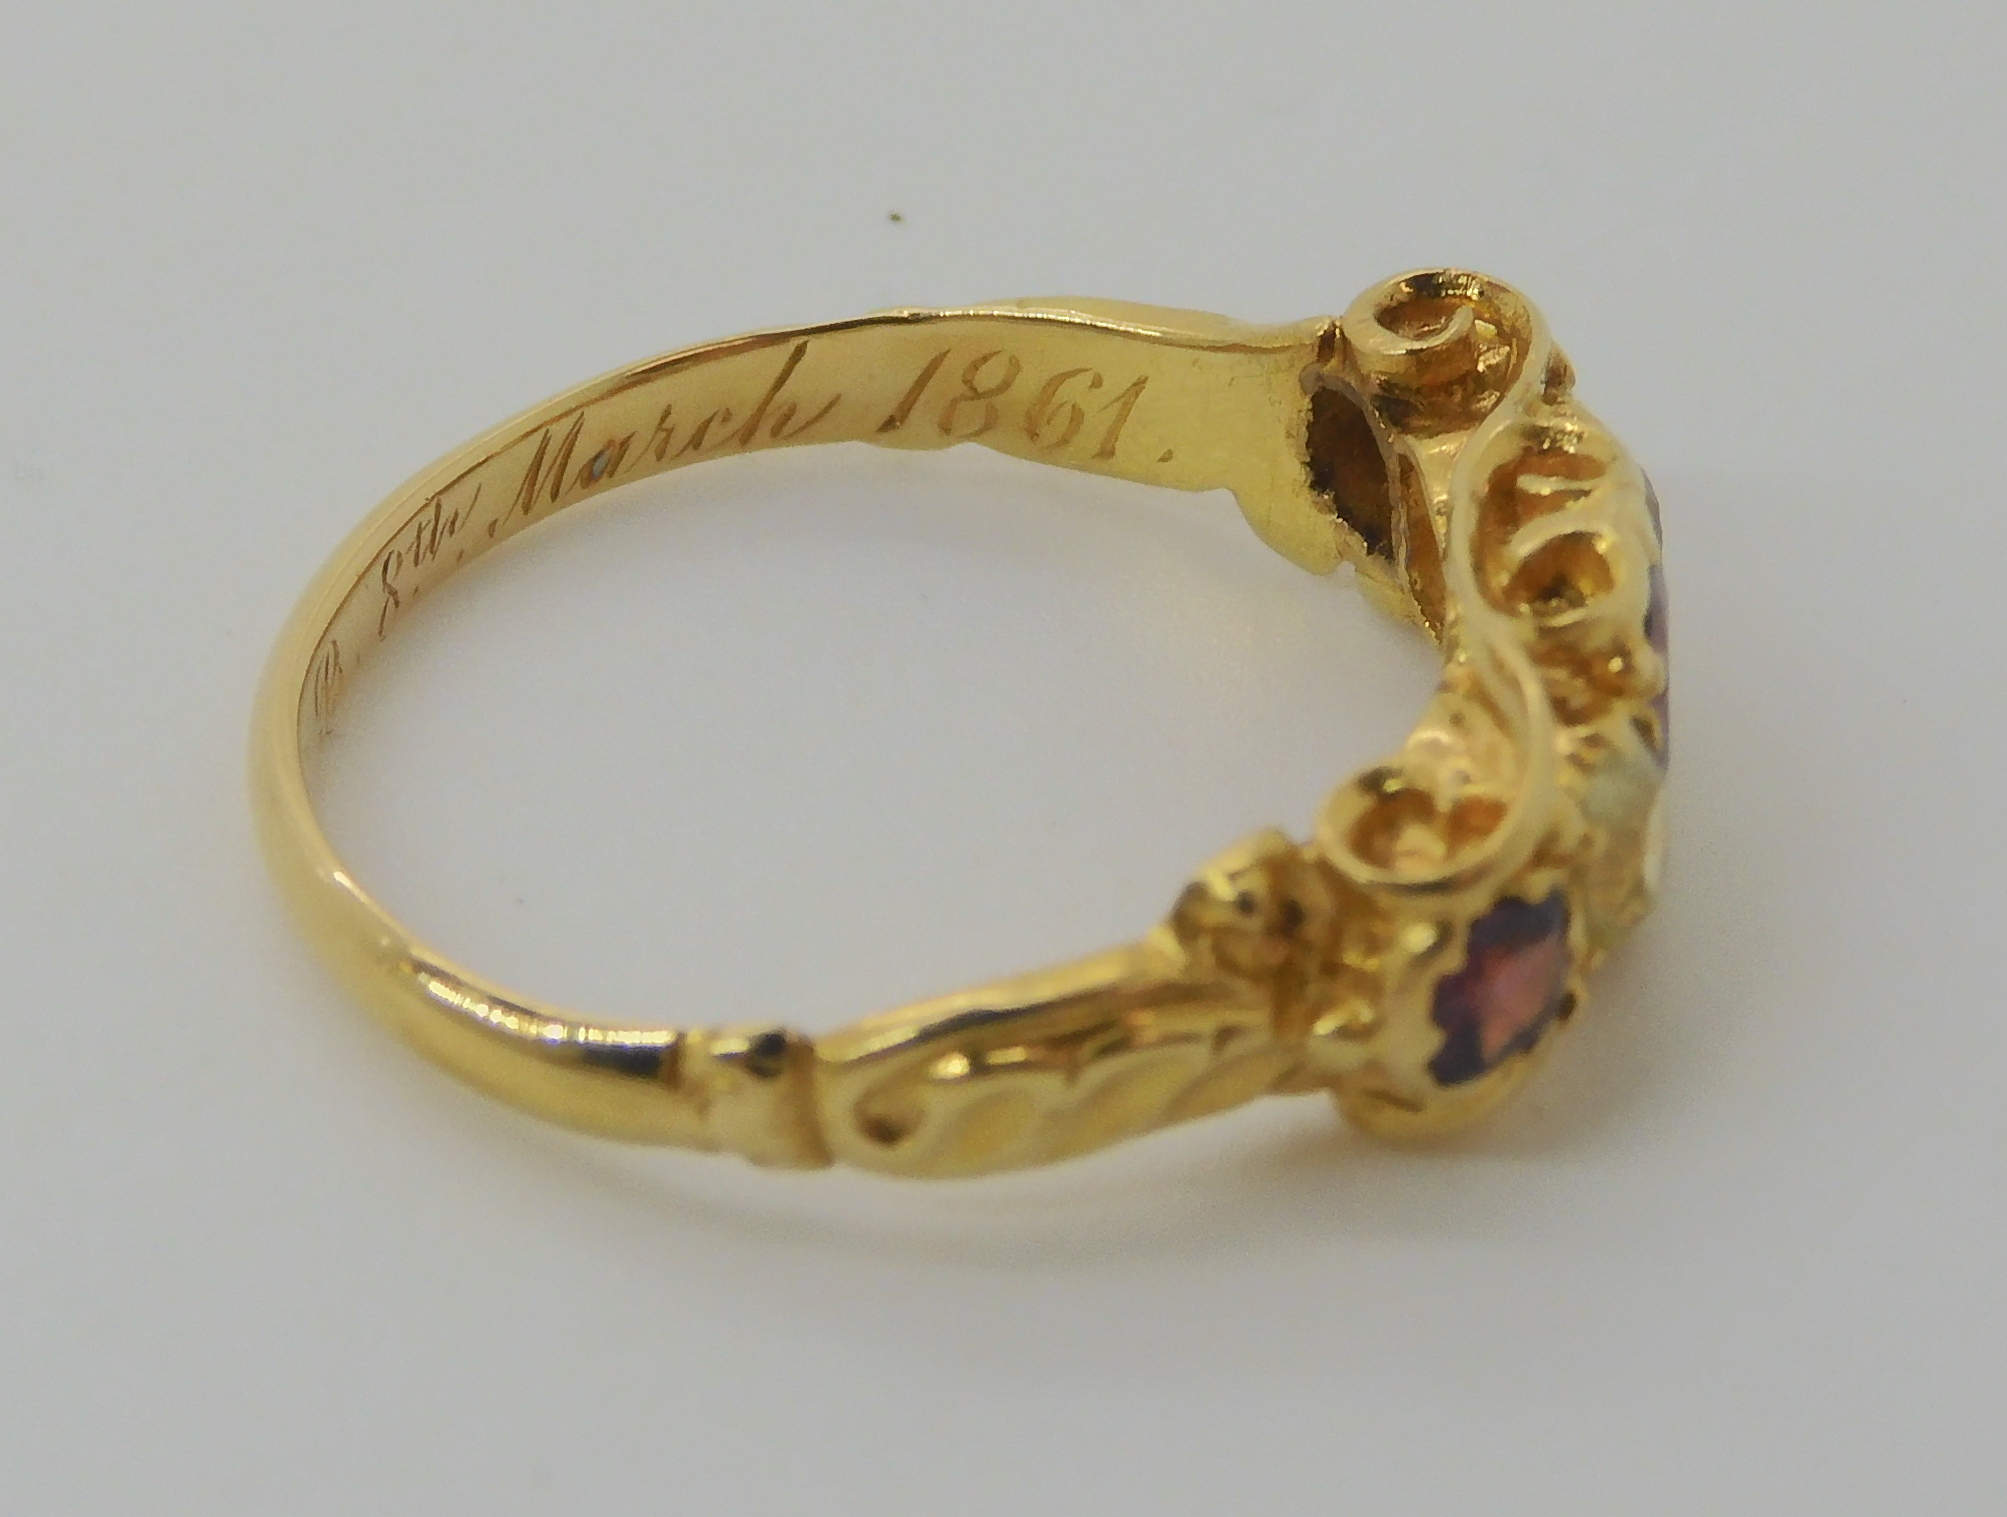 A VICTORIAN GEM SET RING inscribed and dated 1861, set with garnets and pale green gems, finger size - Image 7 of 7